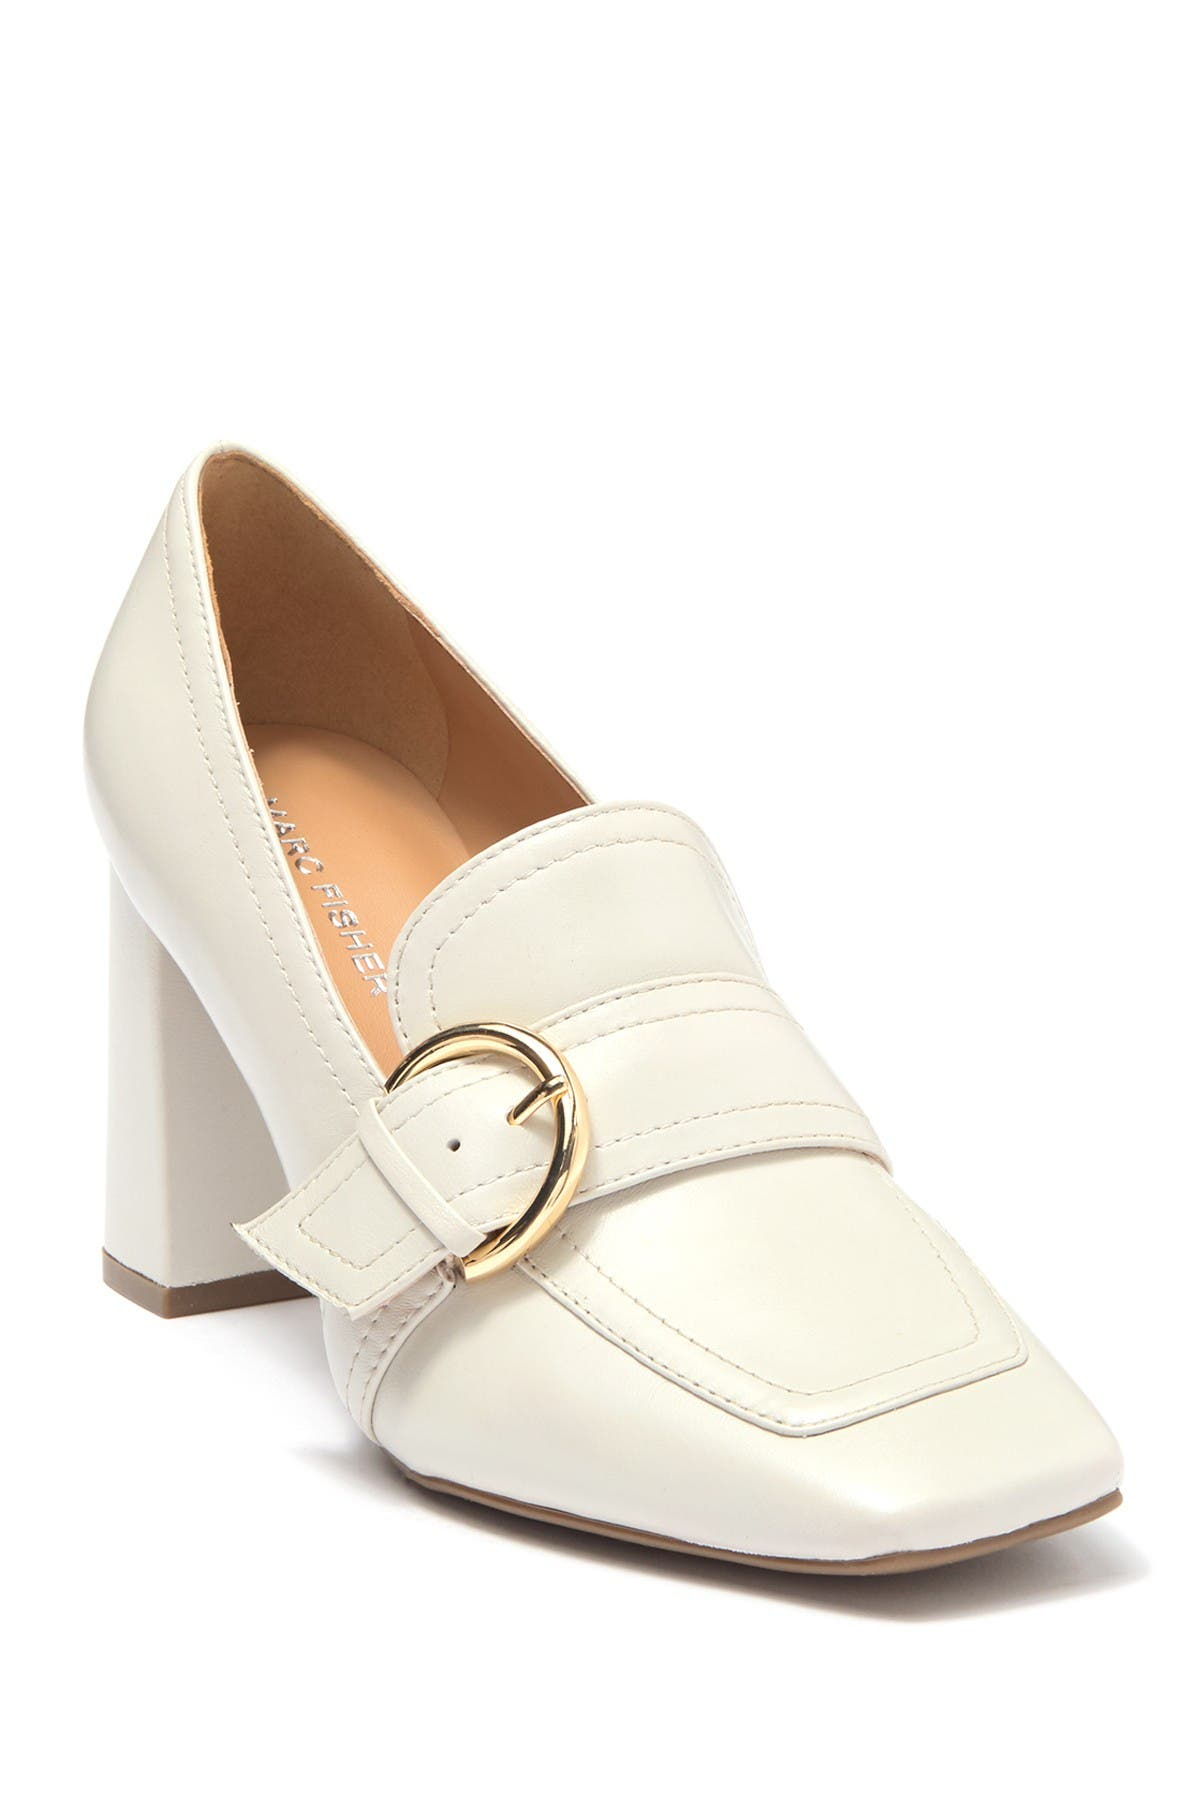 Image of Marc Fisher Square Toe Dress Pump